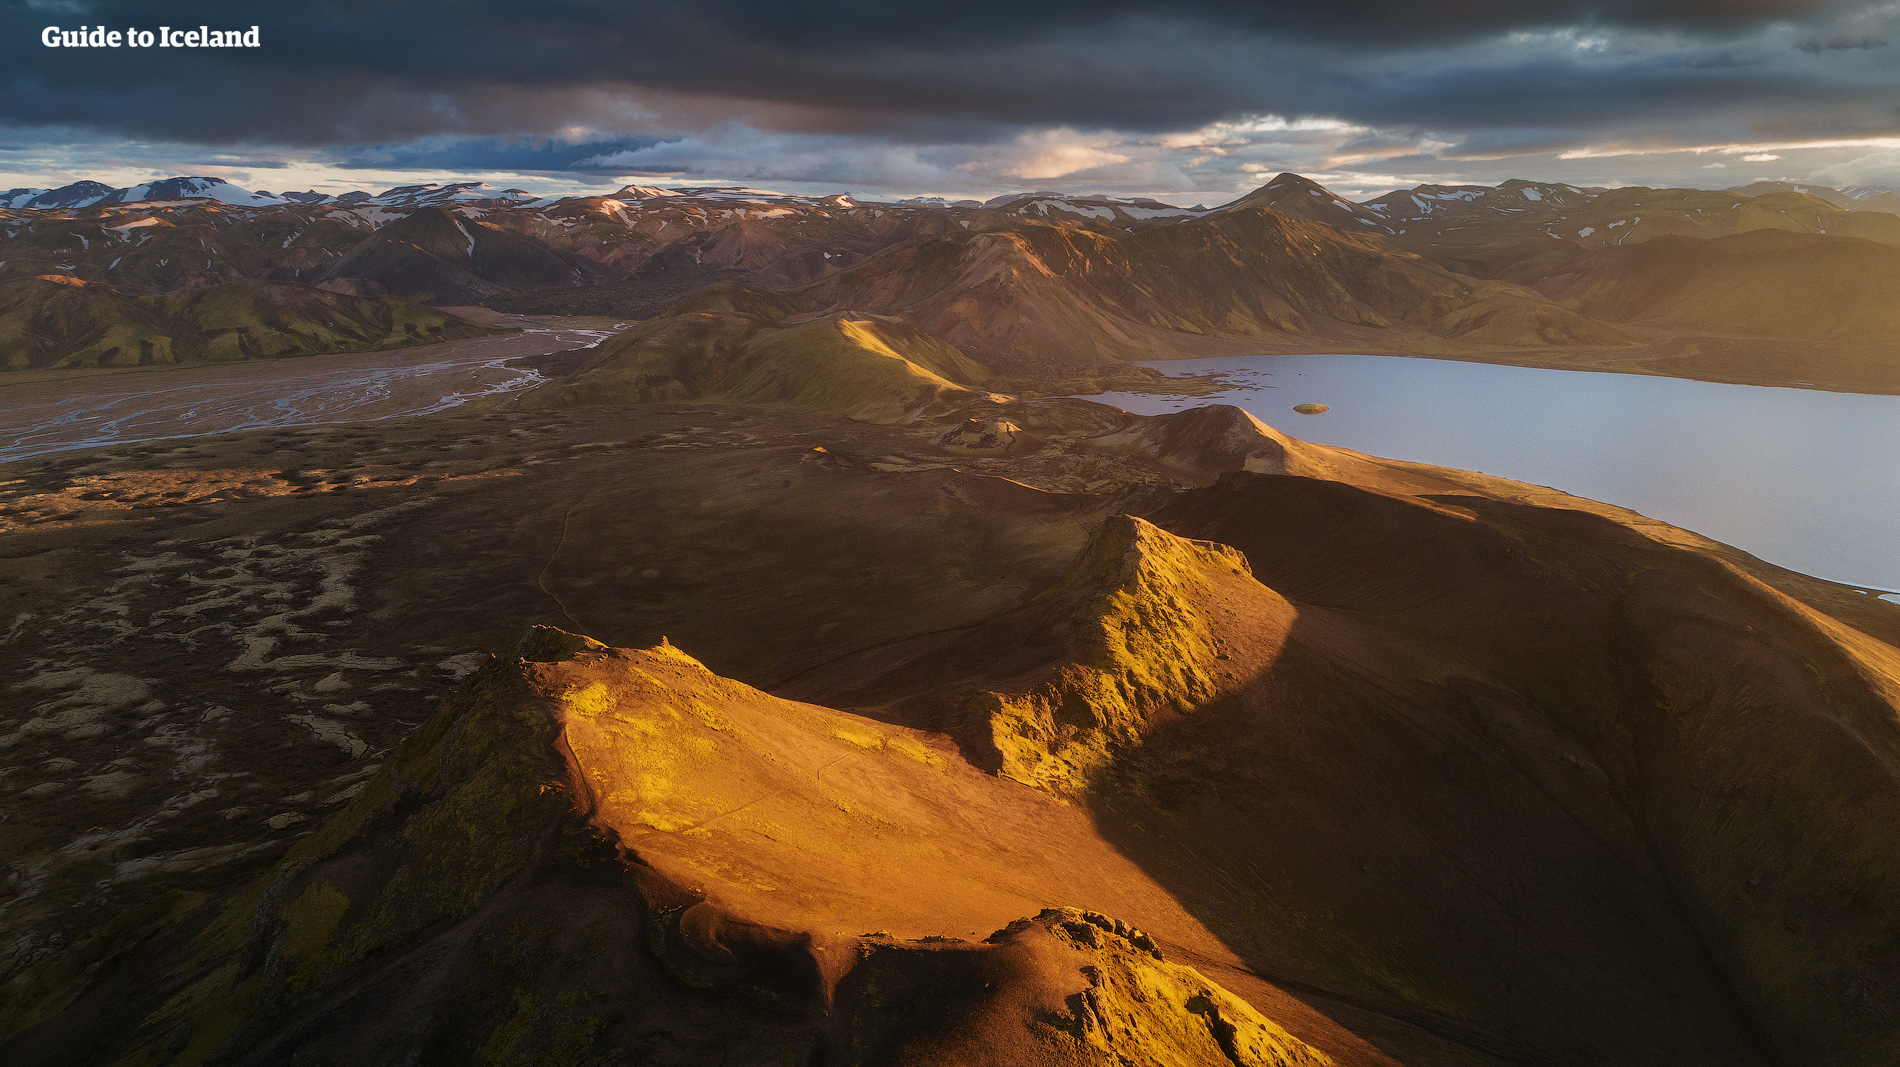 The mountains of the Icelandic Highlands.